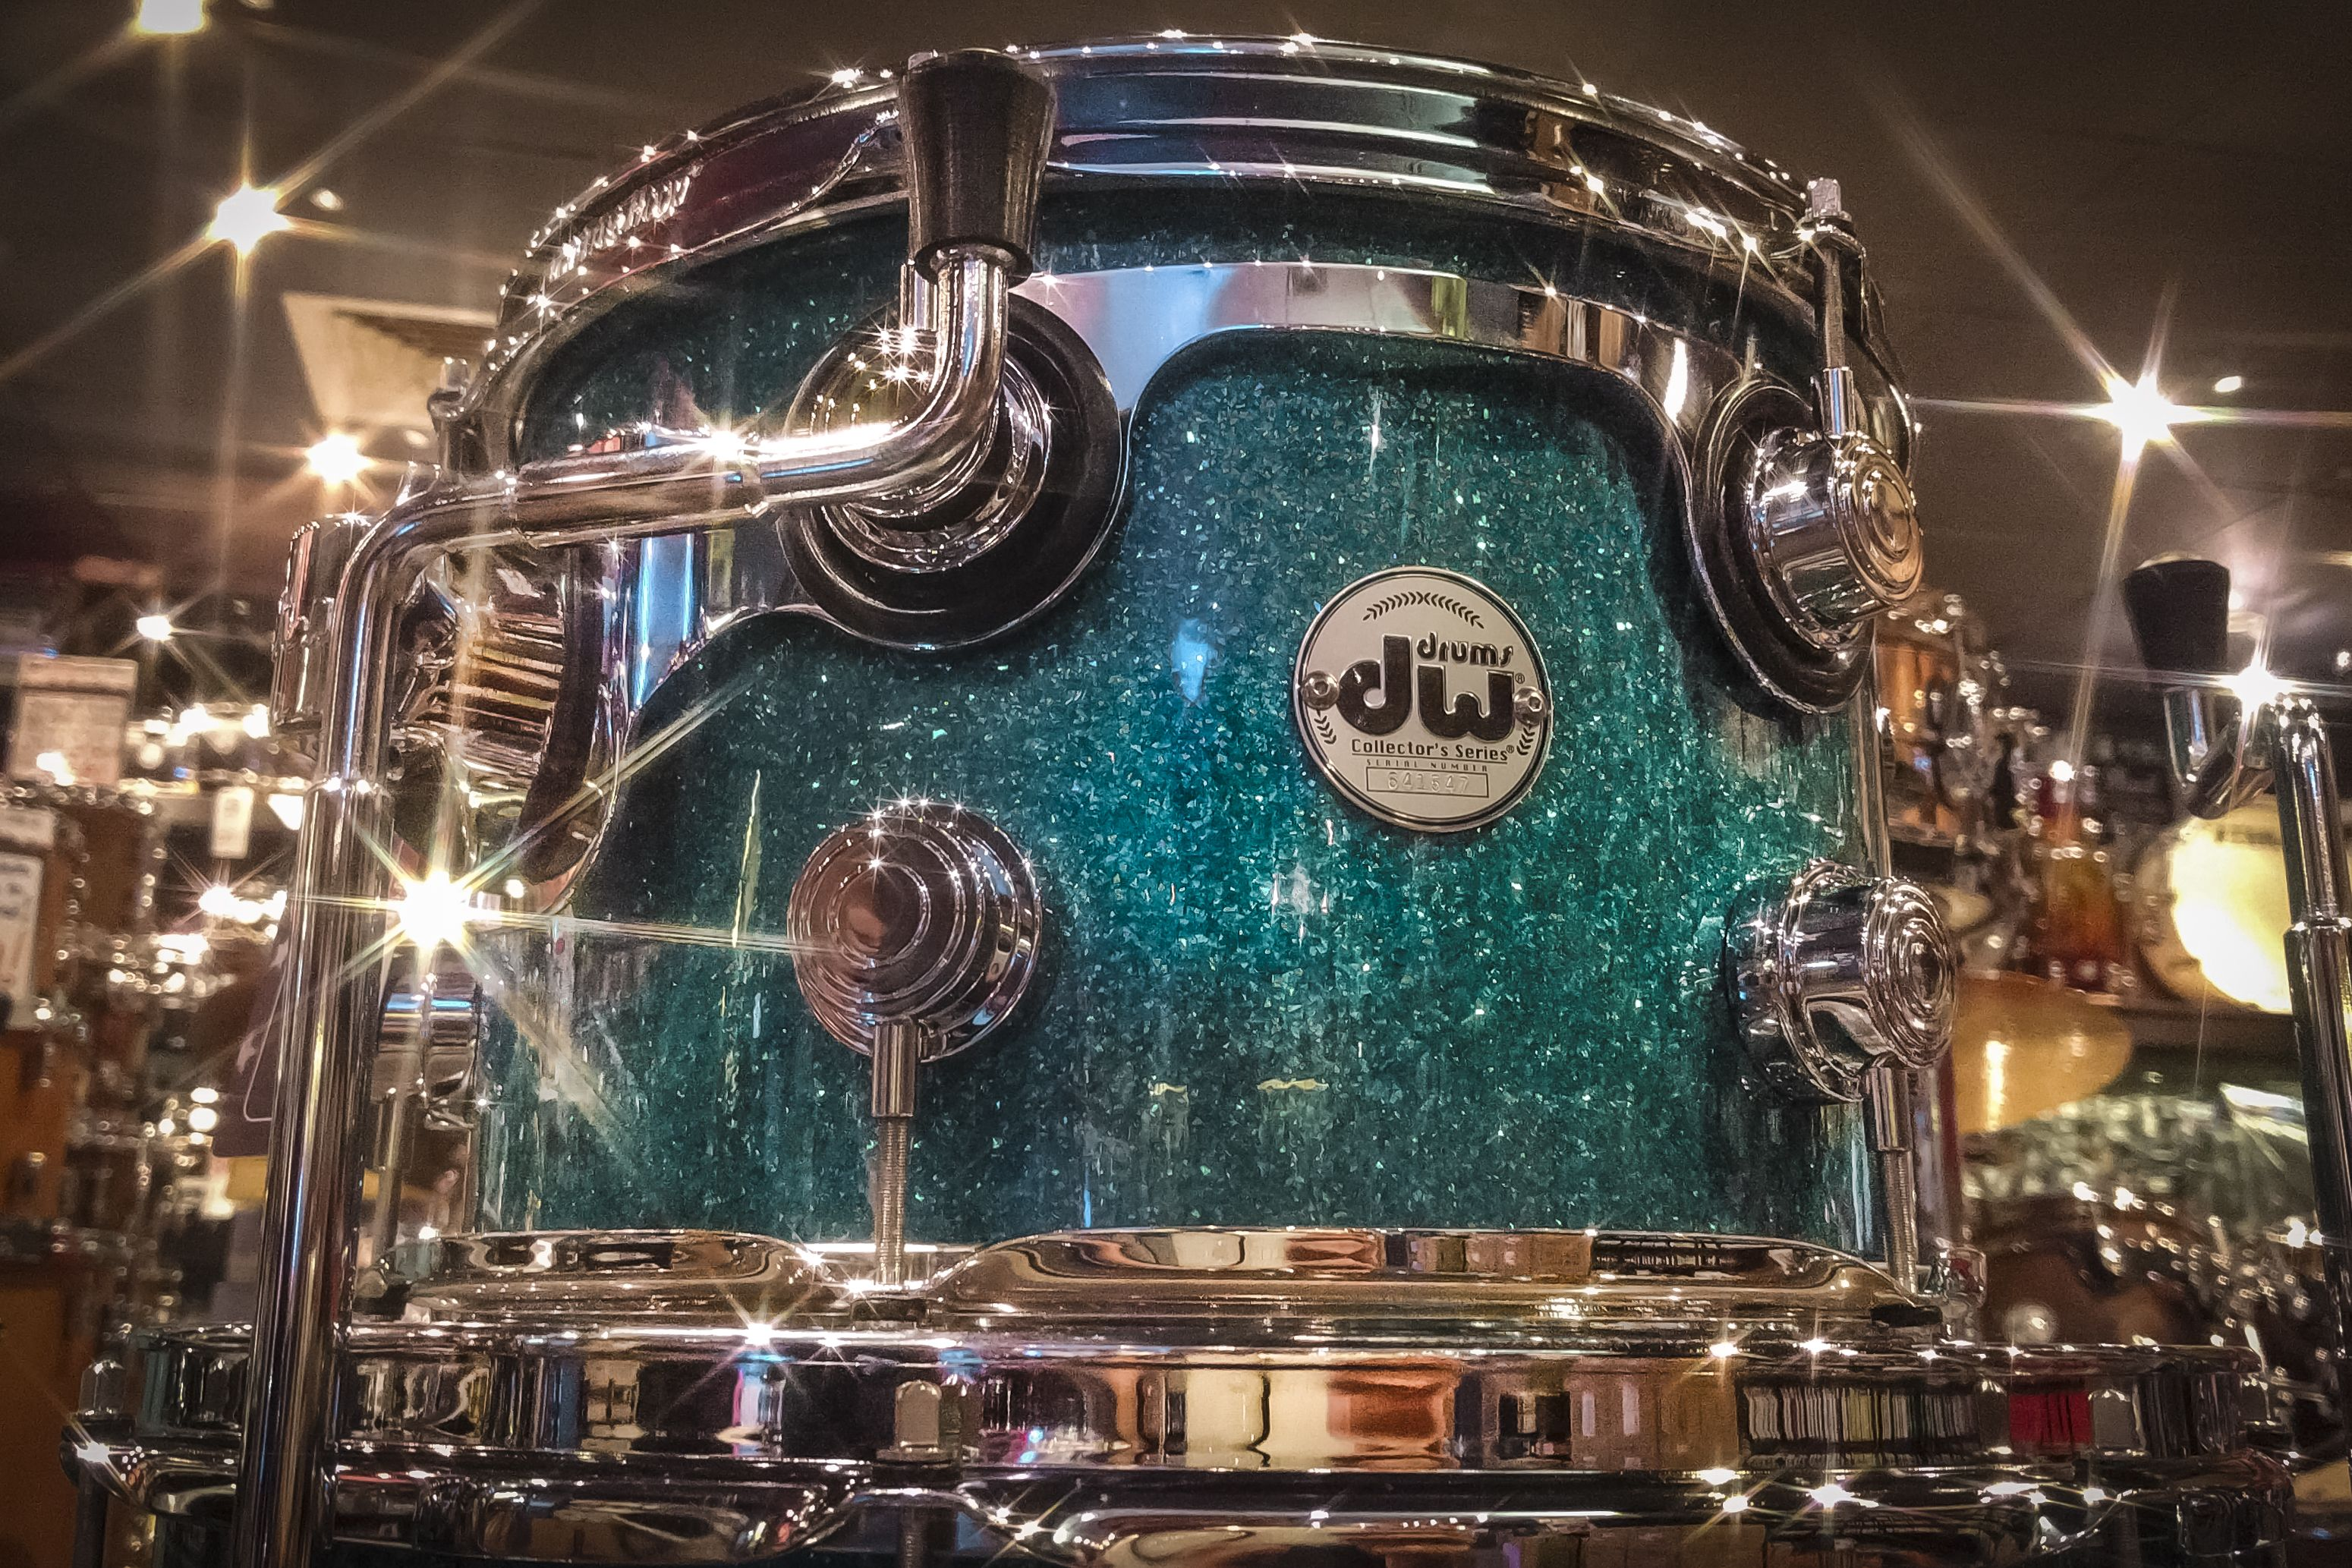 Unbelievably Good Lookin Dw Collector S Series Pure Maple In Teal Glass 22 X 16 Bass Drum 12 X 8 Tom And 16 X 14 Floor Tom D Drum And Bass Dw Drums Drums